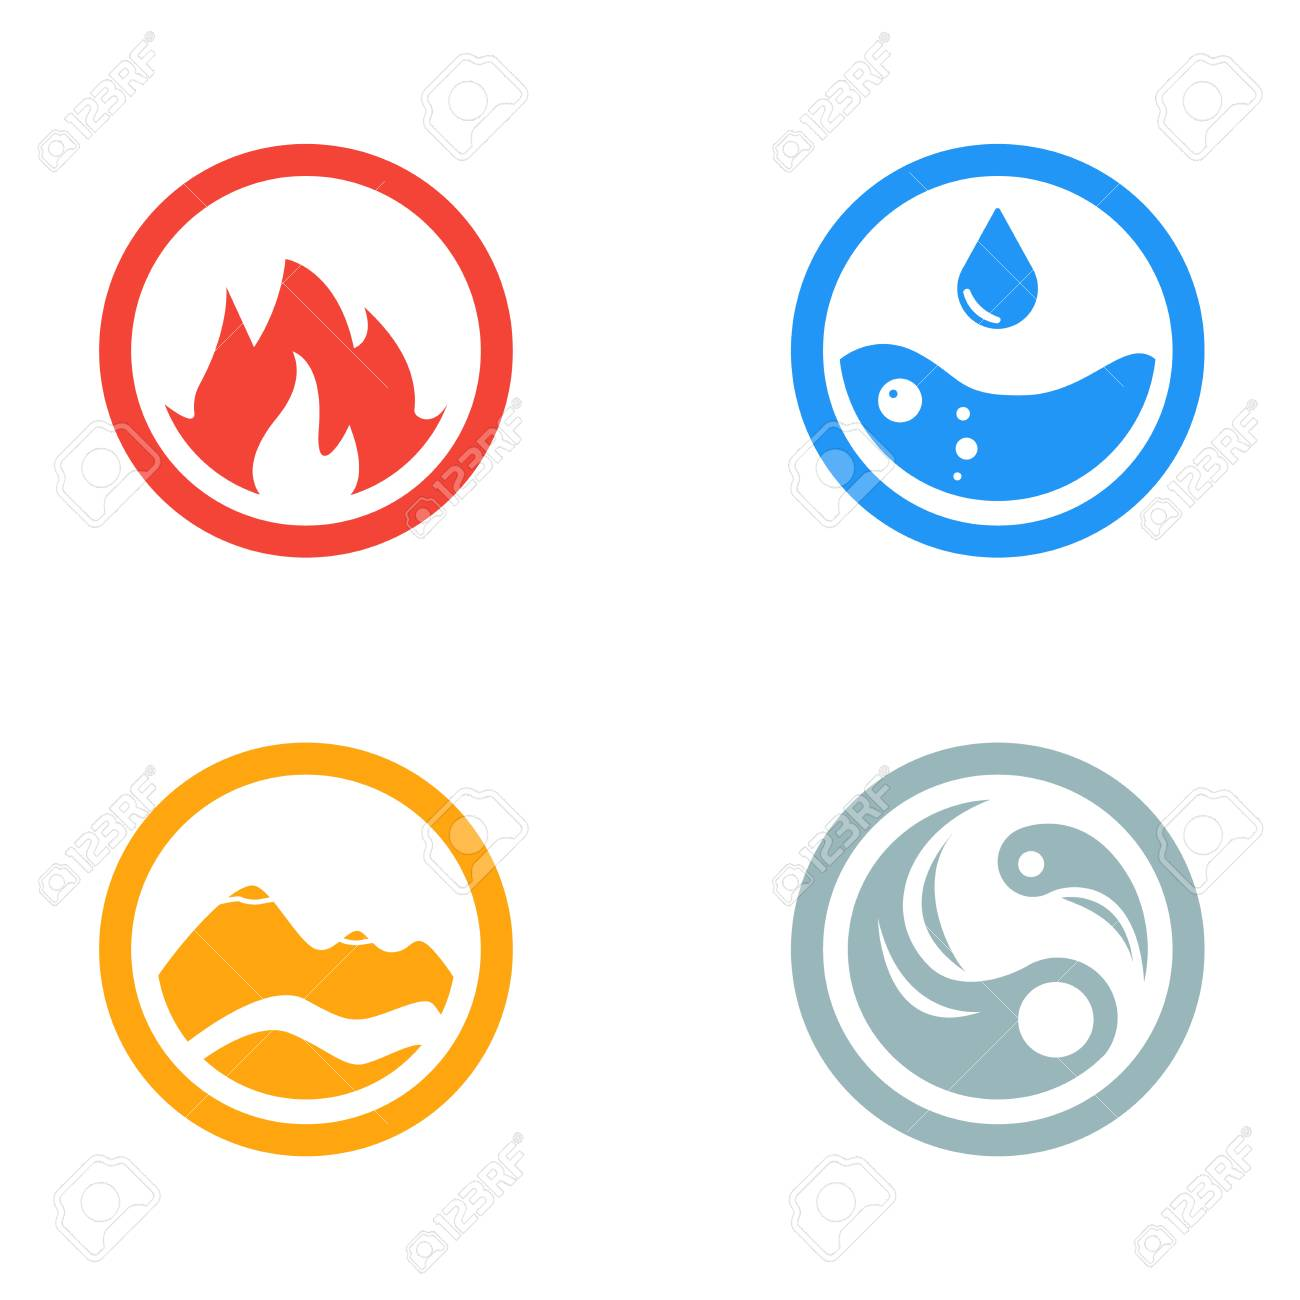 Vector illustration of four elements icons round icons symbols vector illustration of four elements icons round icons symbols template wind fire biocorpaavc Images